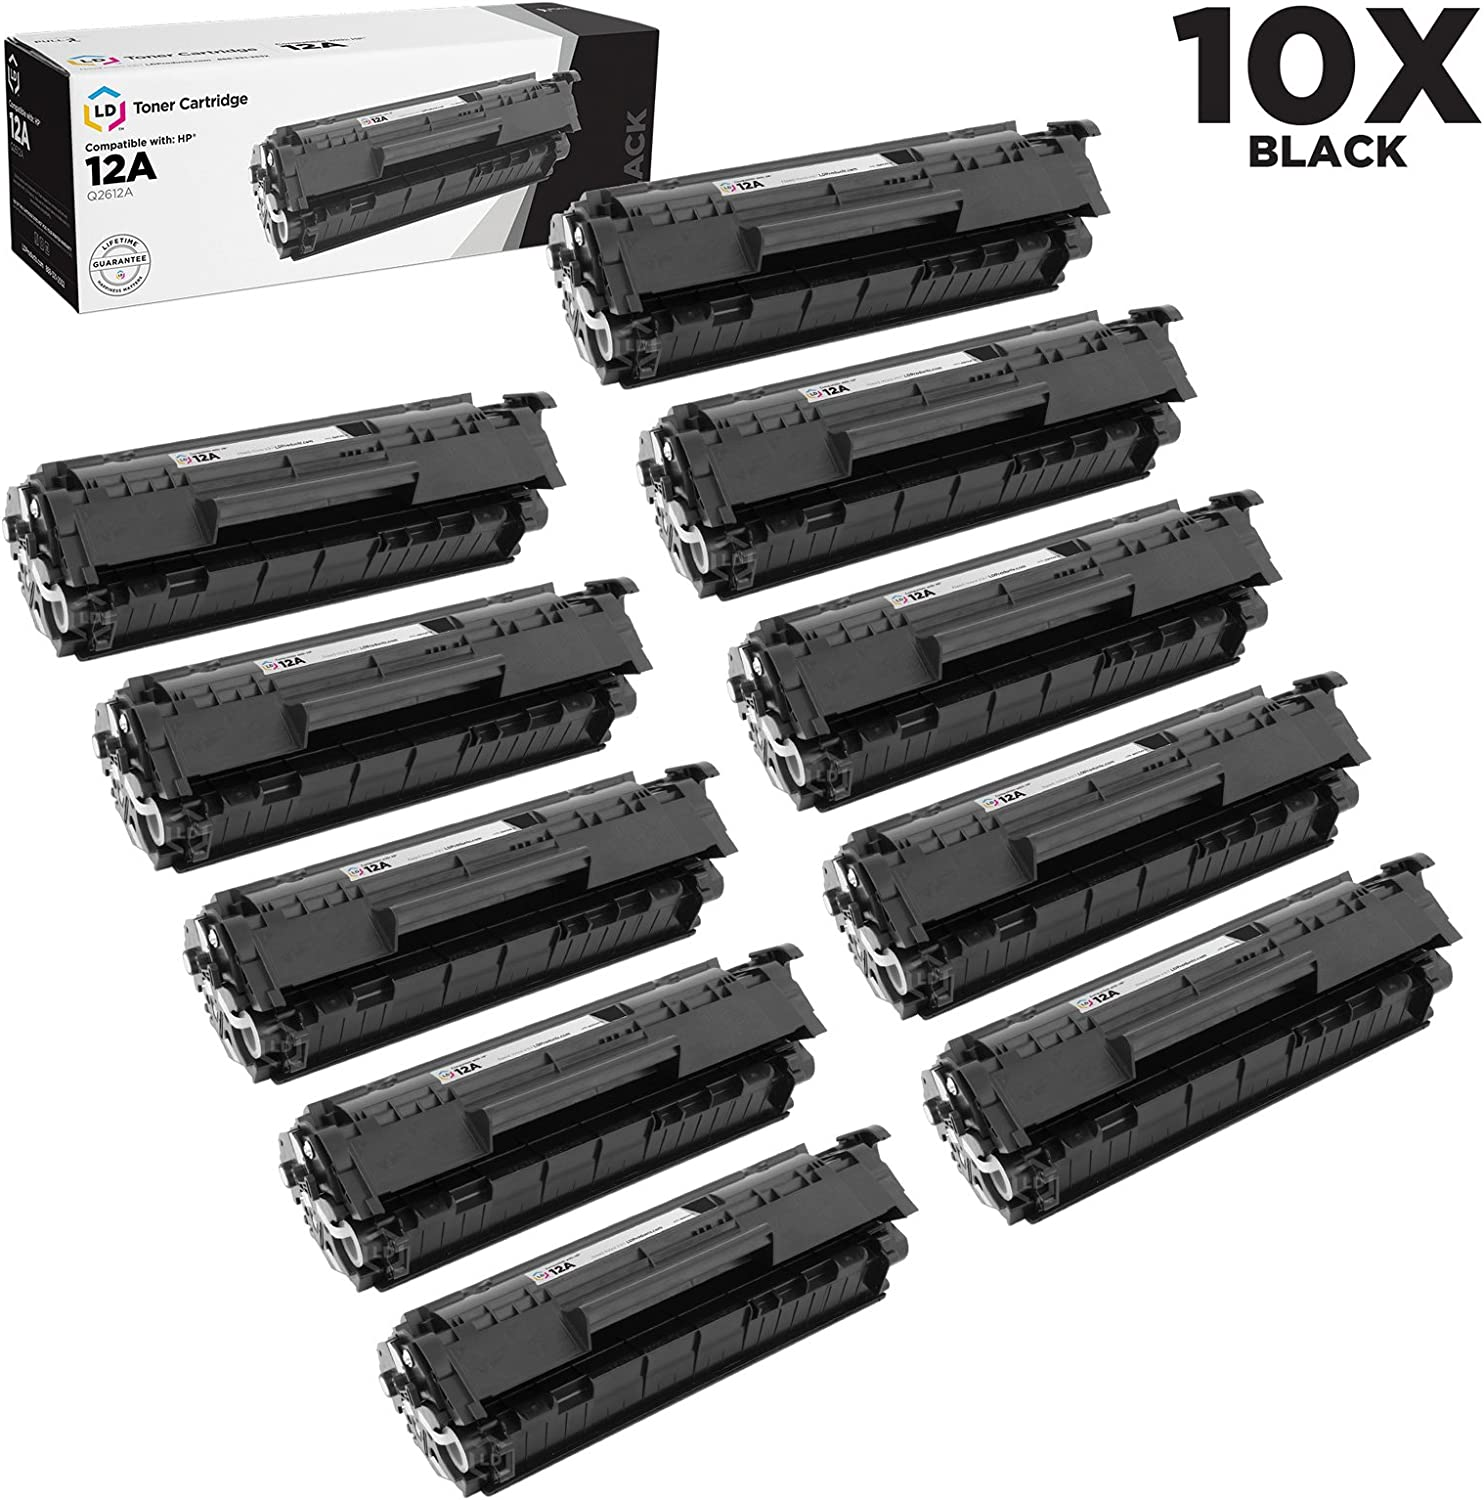 LD Compatible Toner Cartridge Replacement for HP 12A Q2612A (Black, 10-Pack)